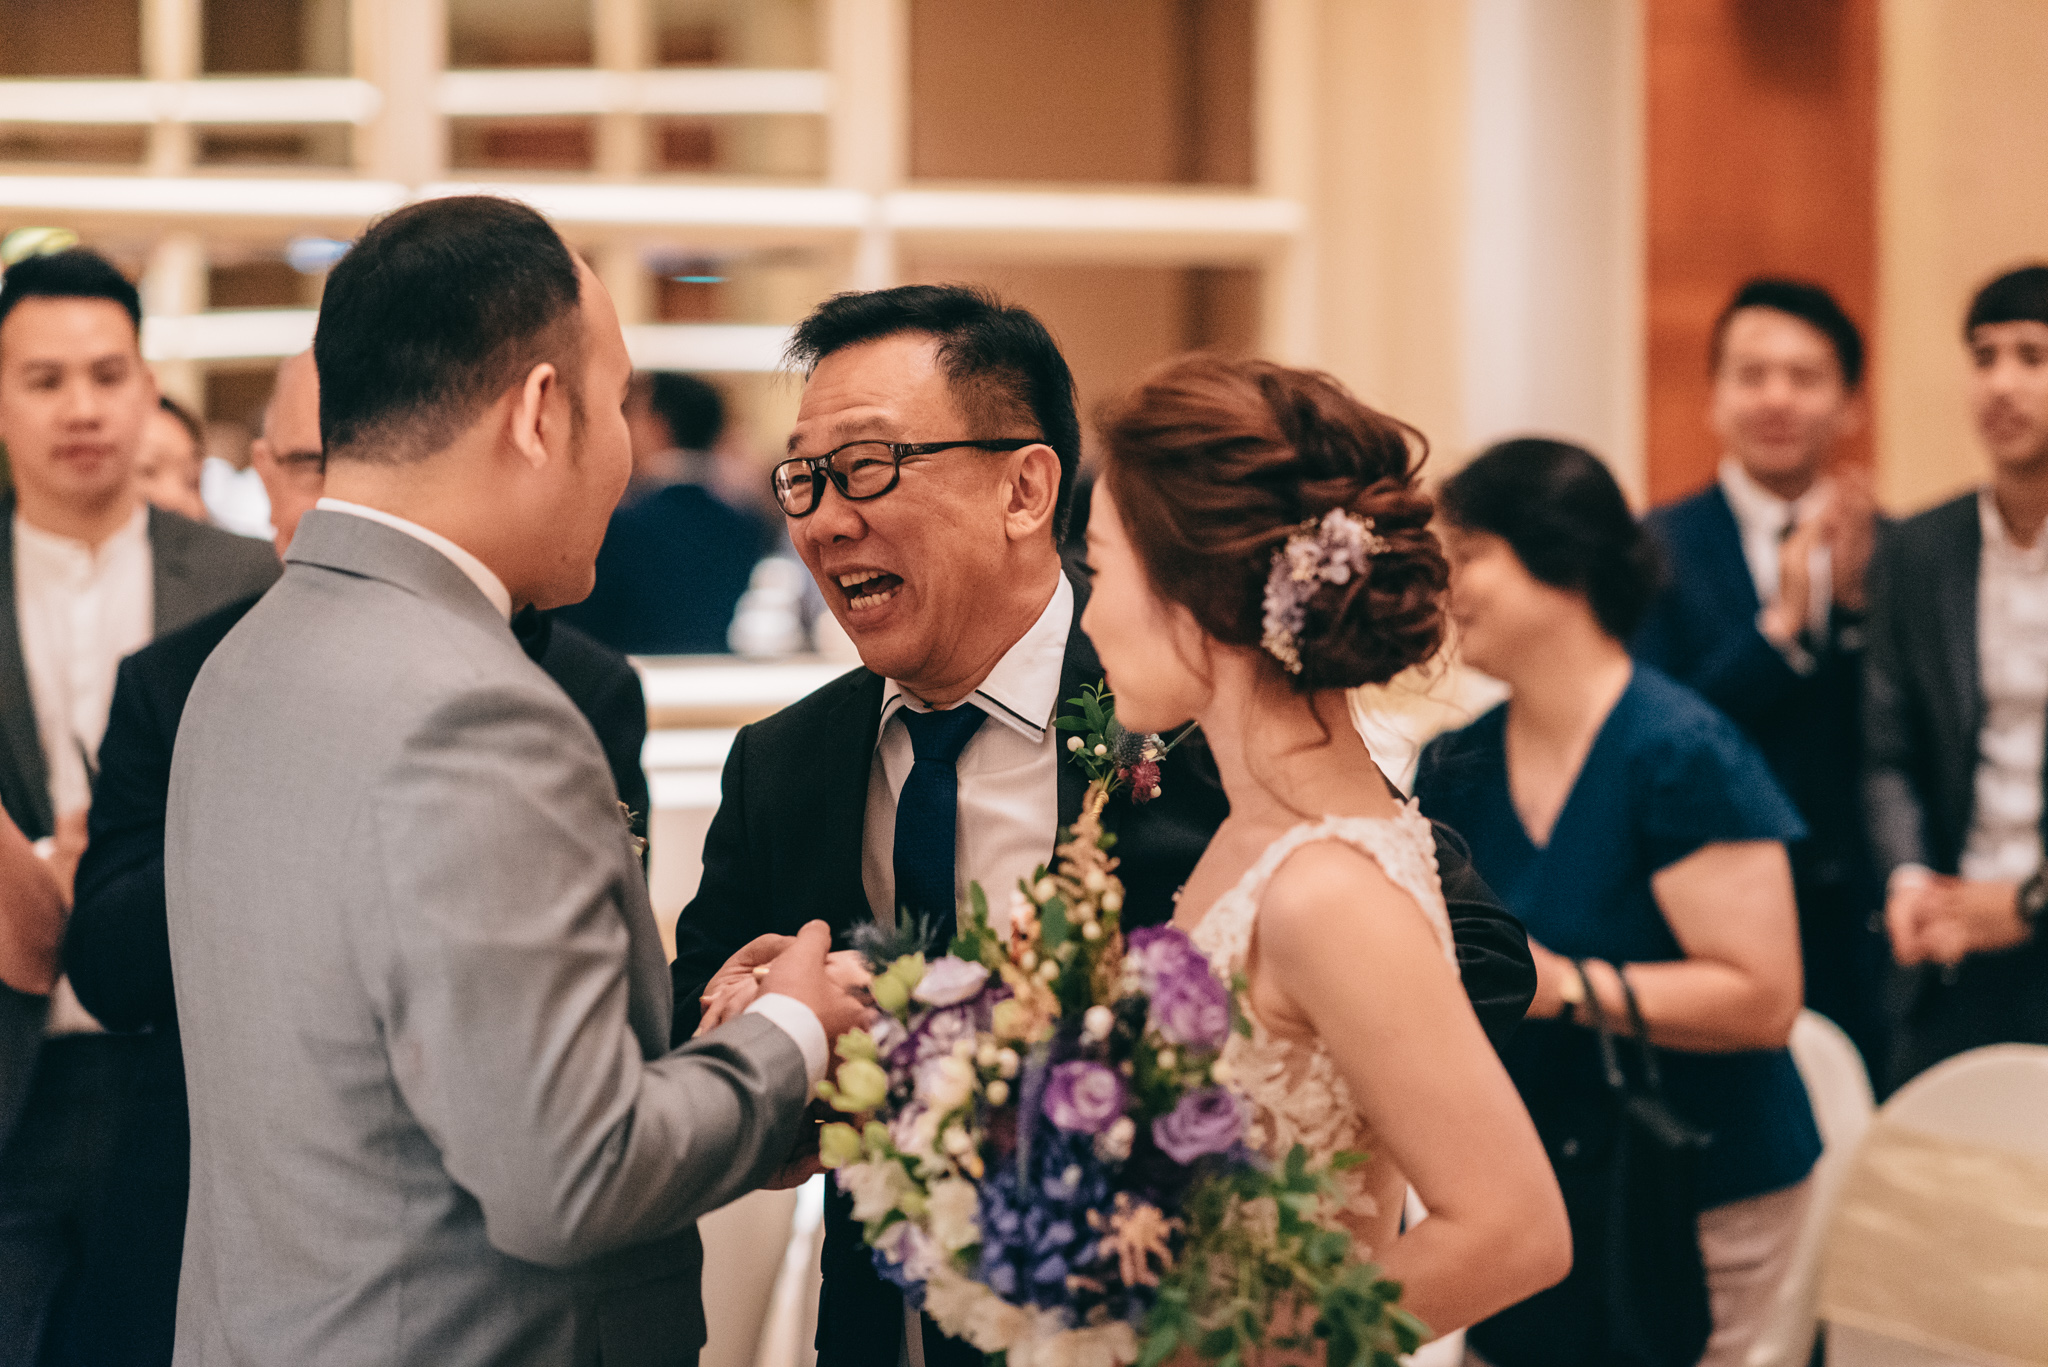 Eunice & Winshire Wedding Day Highlights (resized for sharing) - 132.jpg